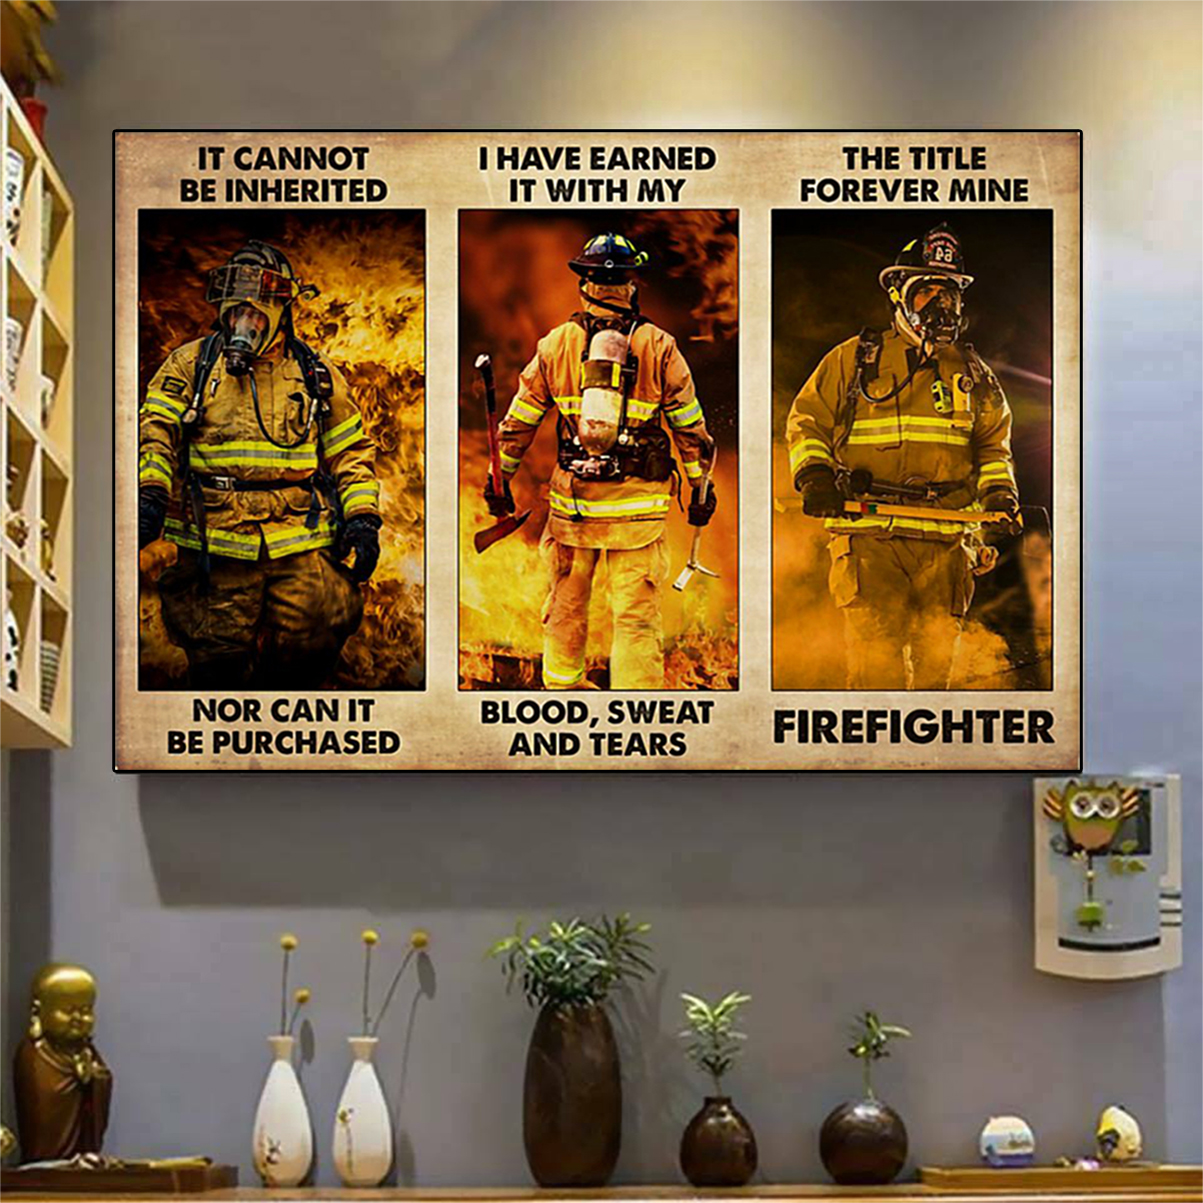 Firefighter it cannot be inherited poster A2